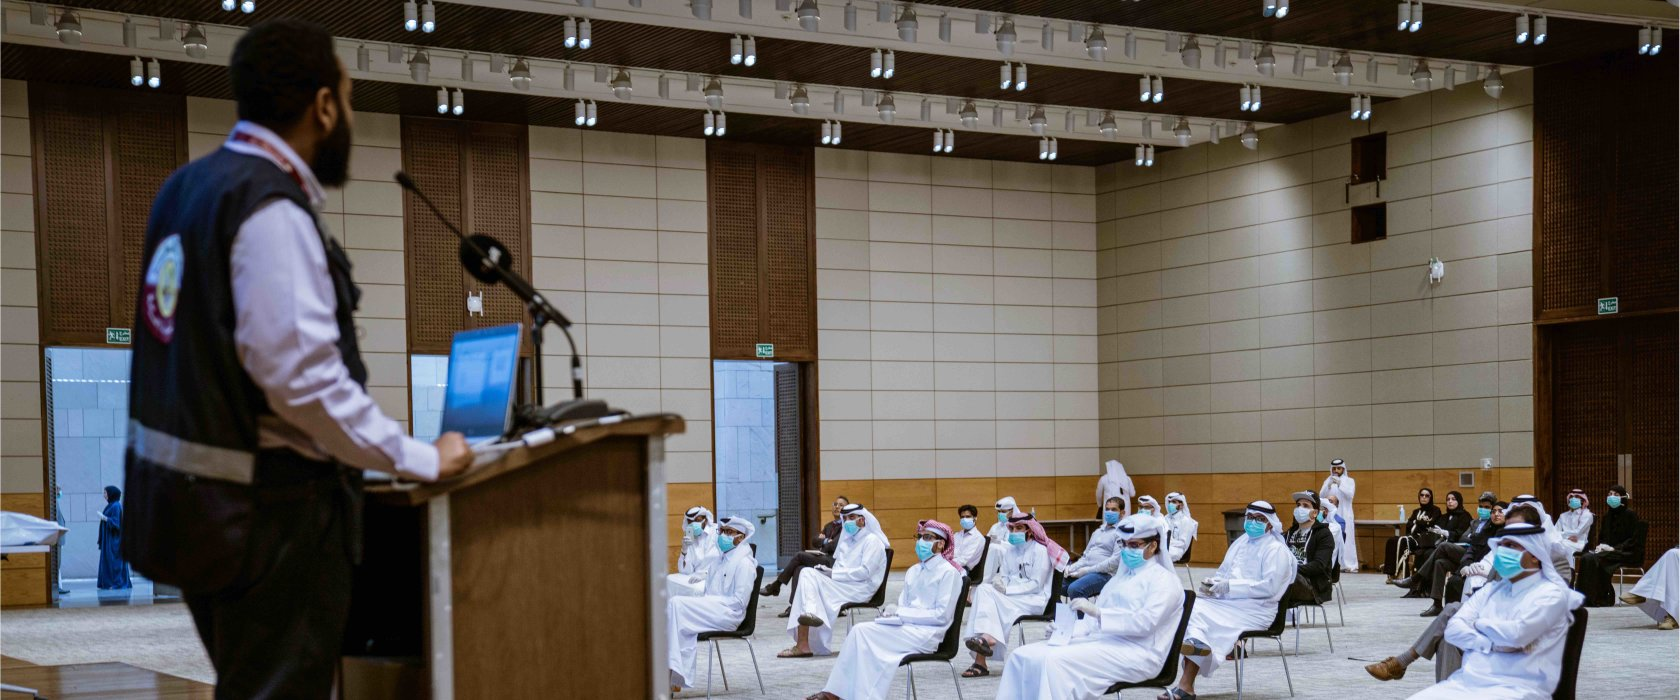 Qatar's first batch of volunteers fighting coronavirus begin training at QF